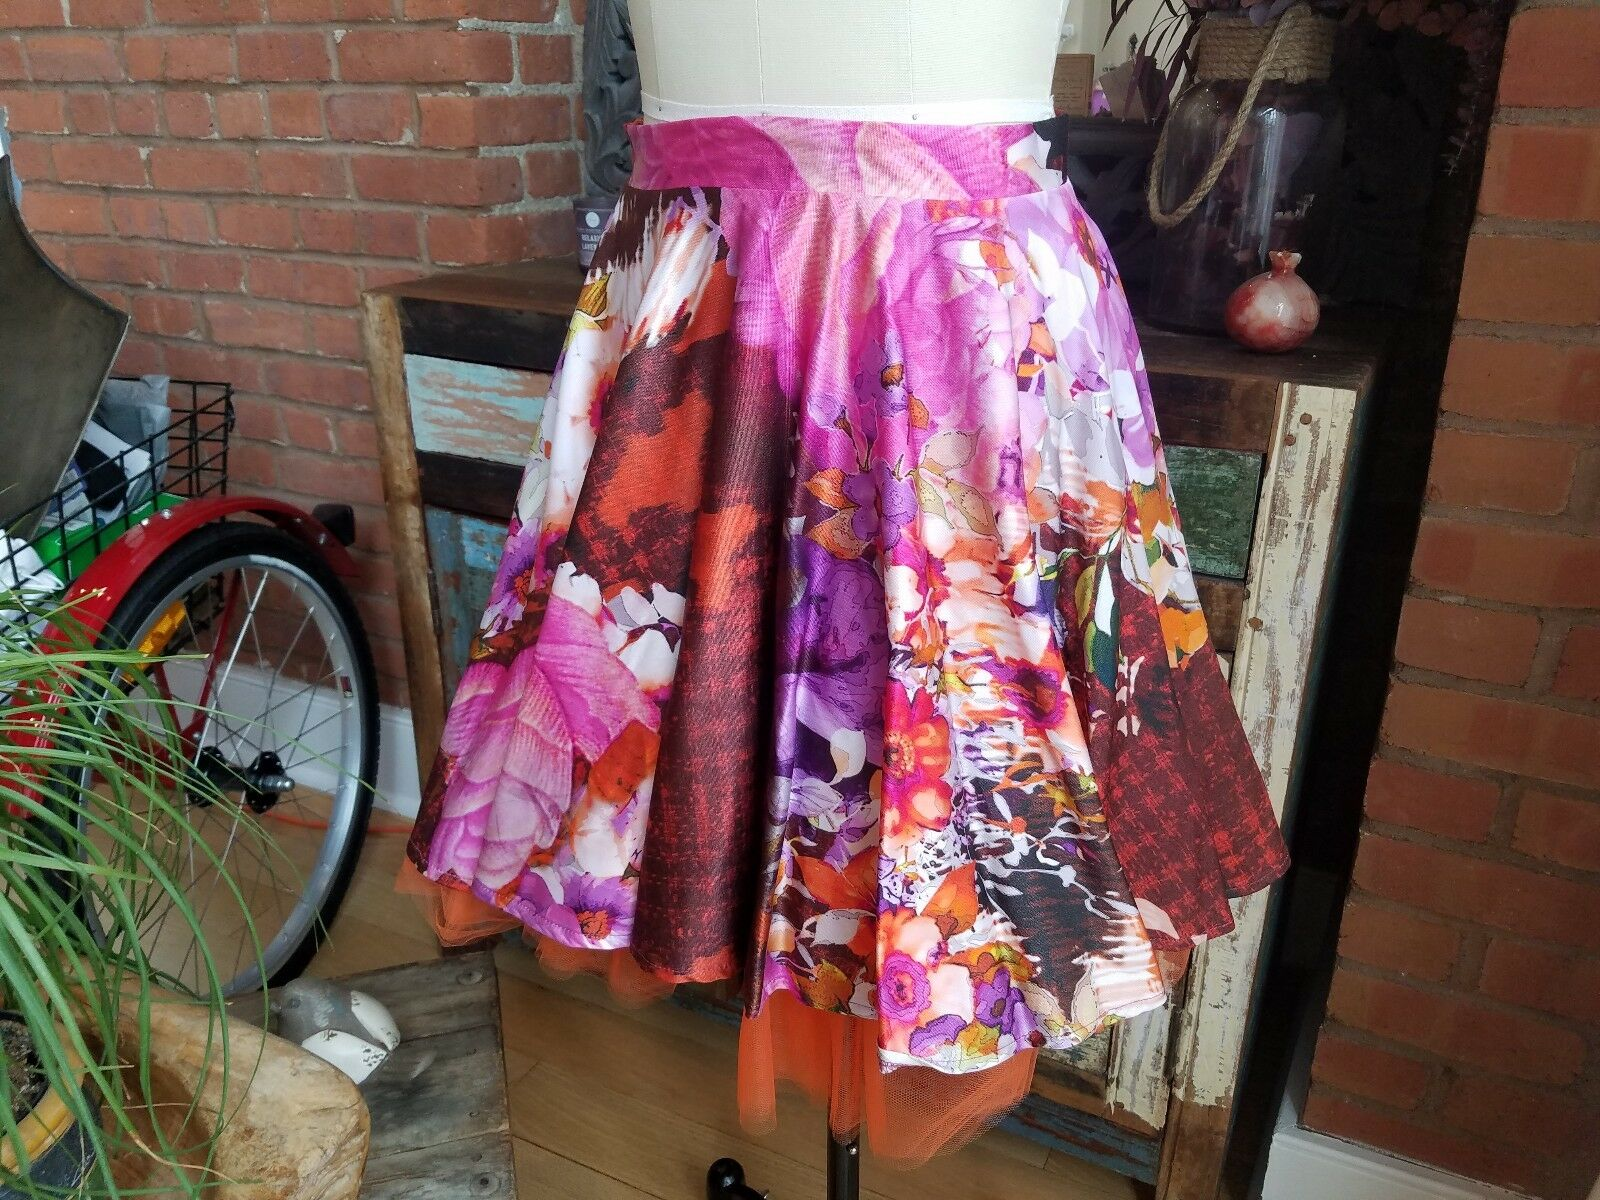 Angela Mele Milano orange Purple Floral Print Tulle Skirt  SZ 42 US 6 New